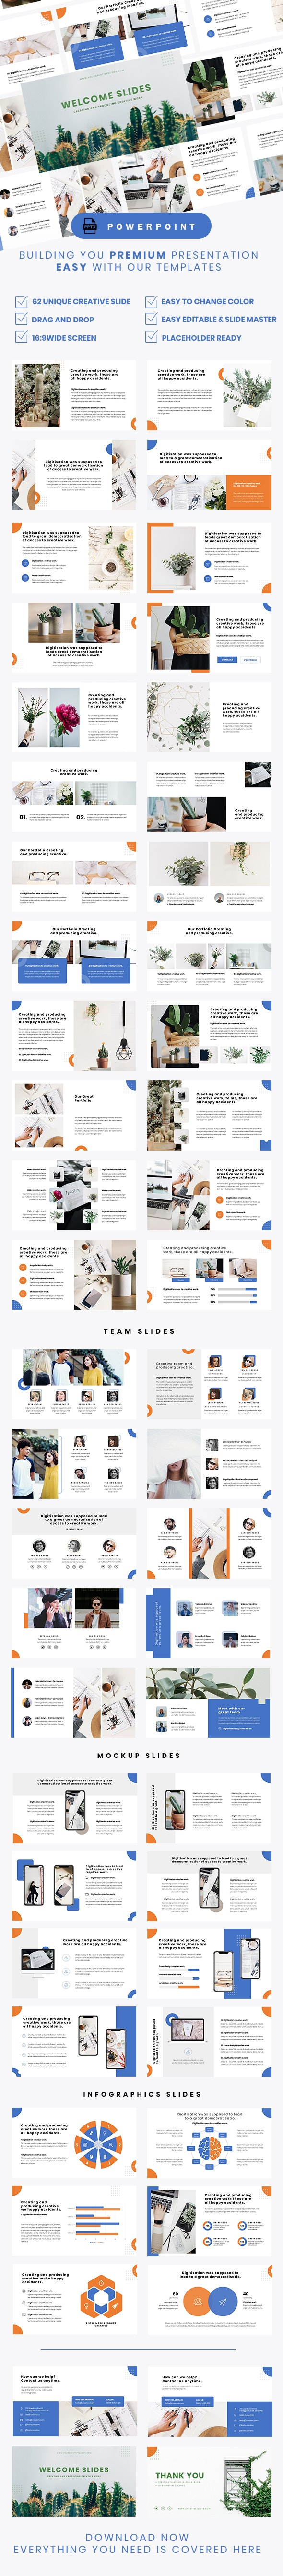 Bluedeck Powerpoint Template By Neaturevisual Graphicriver